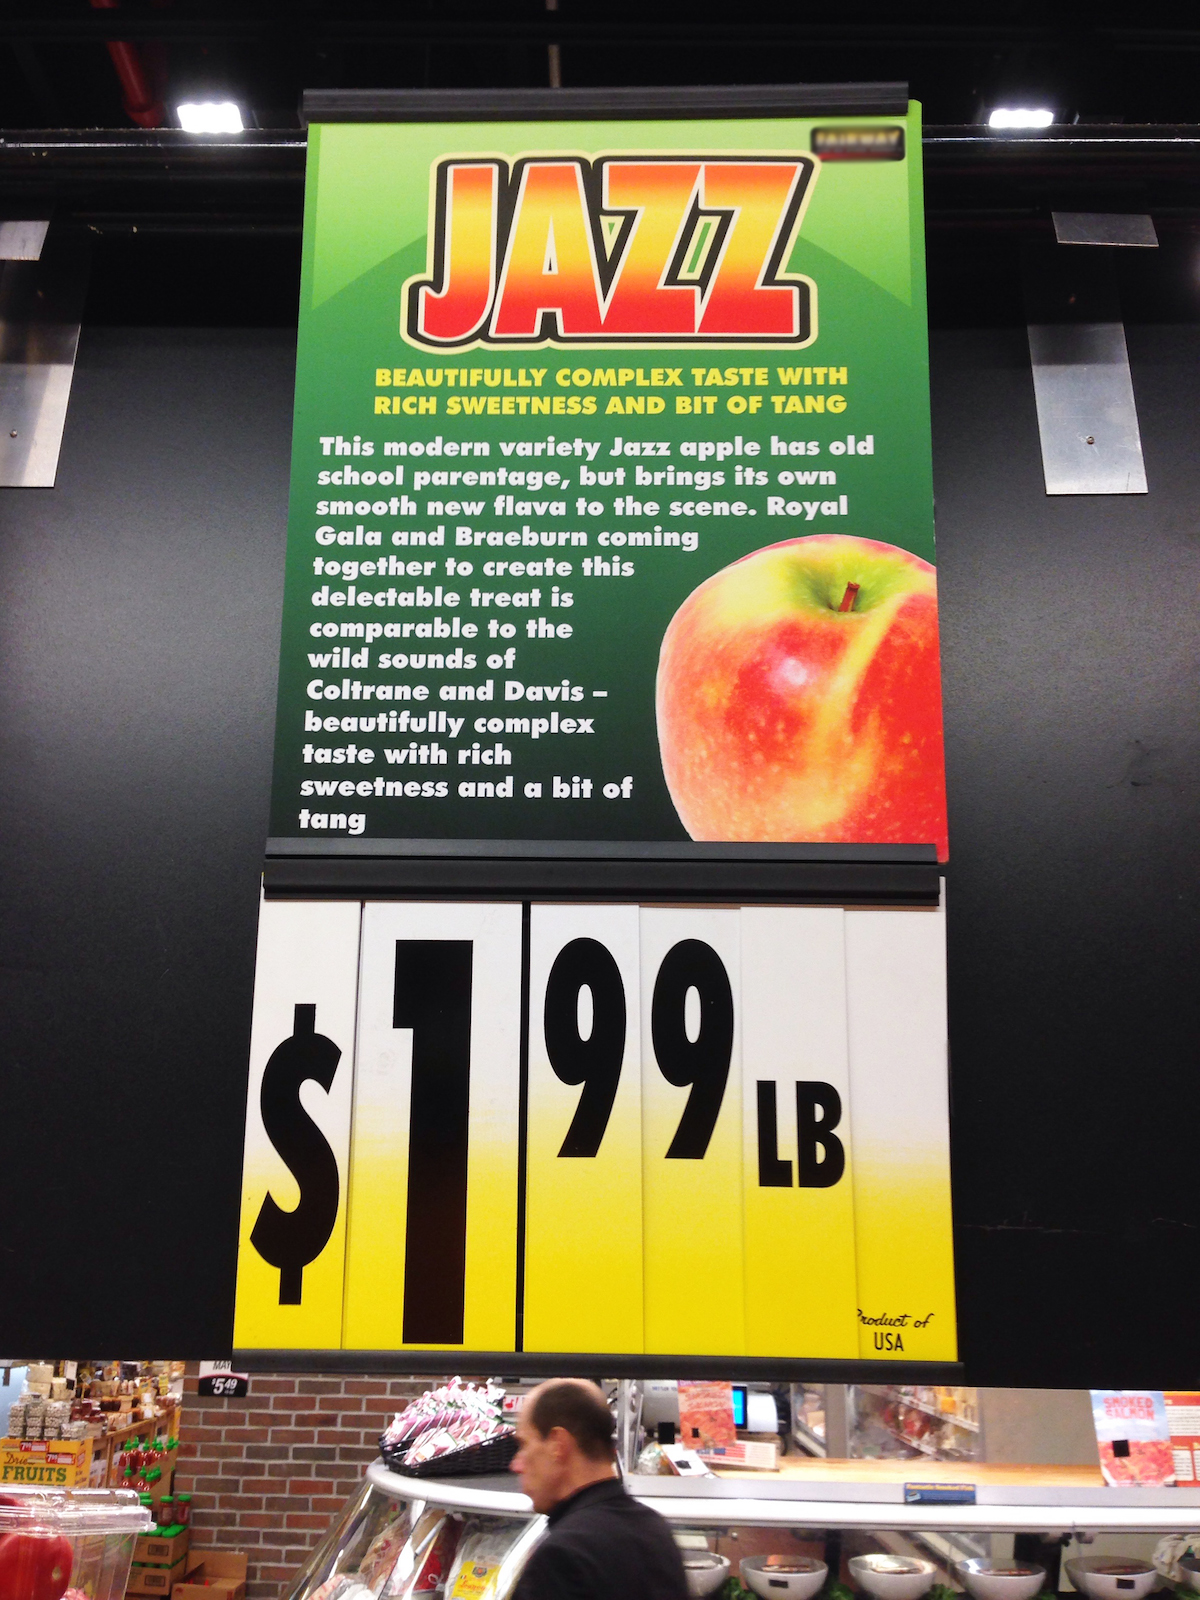 jazz in marketing, jazz apples